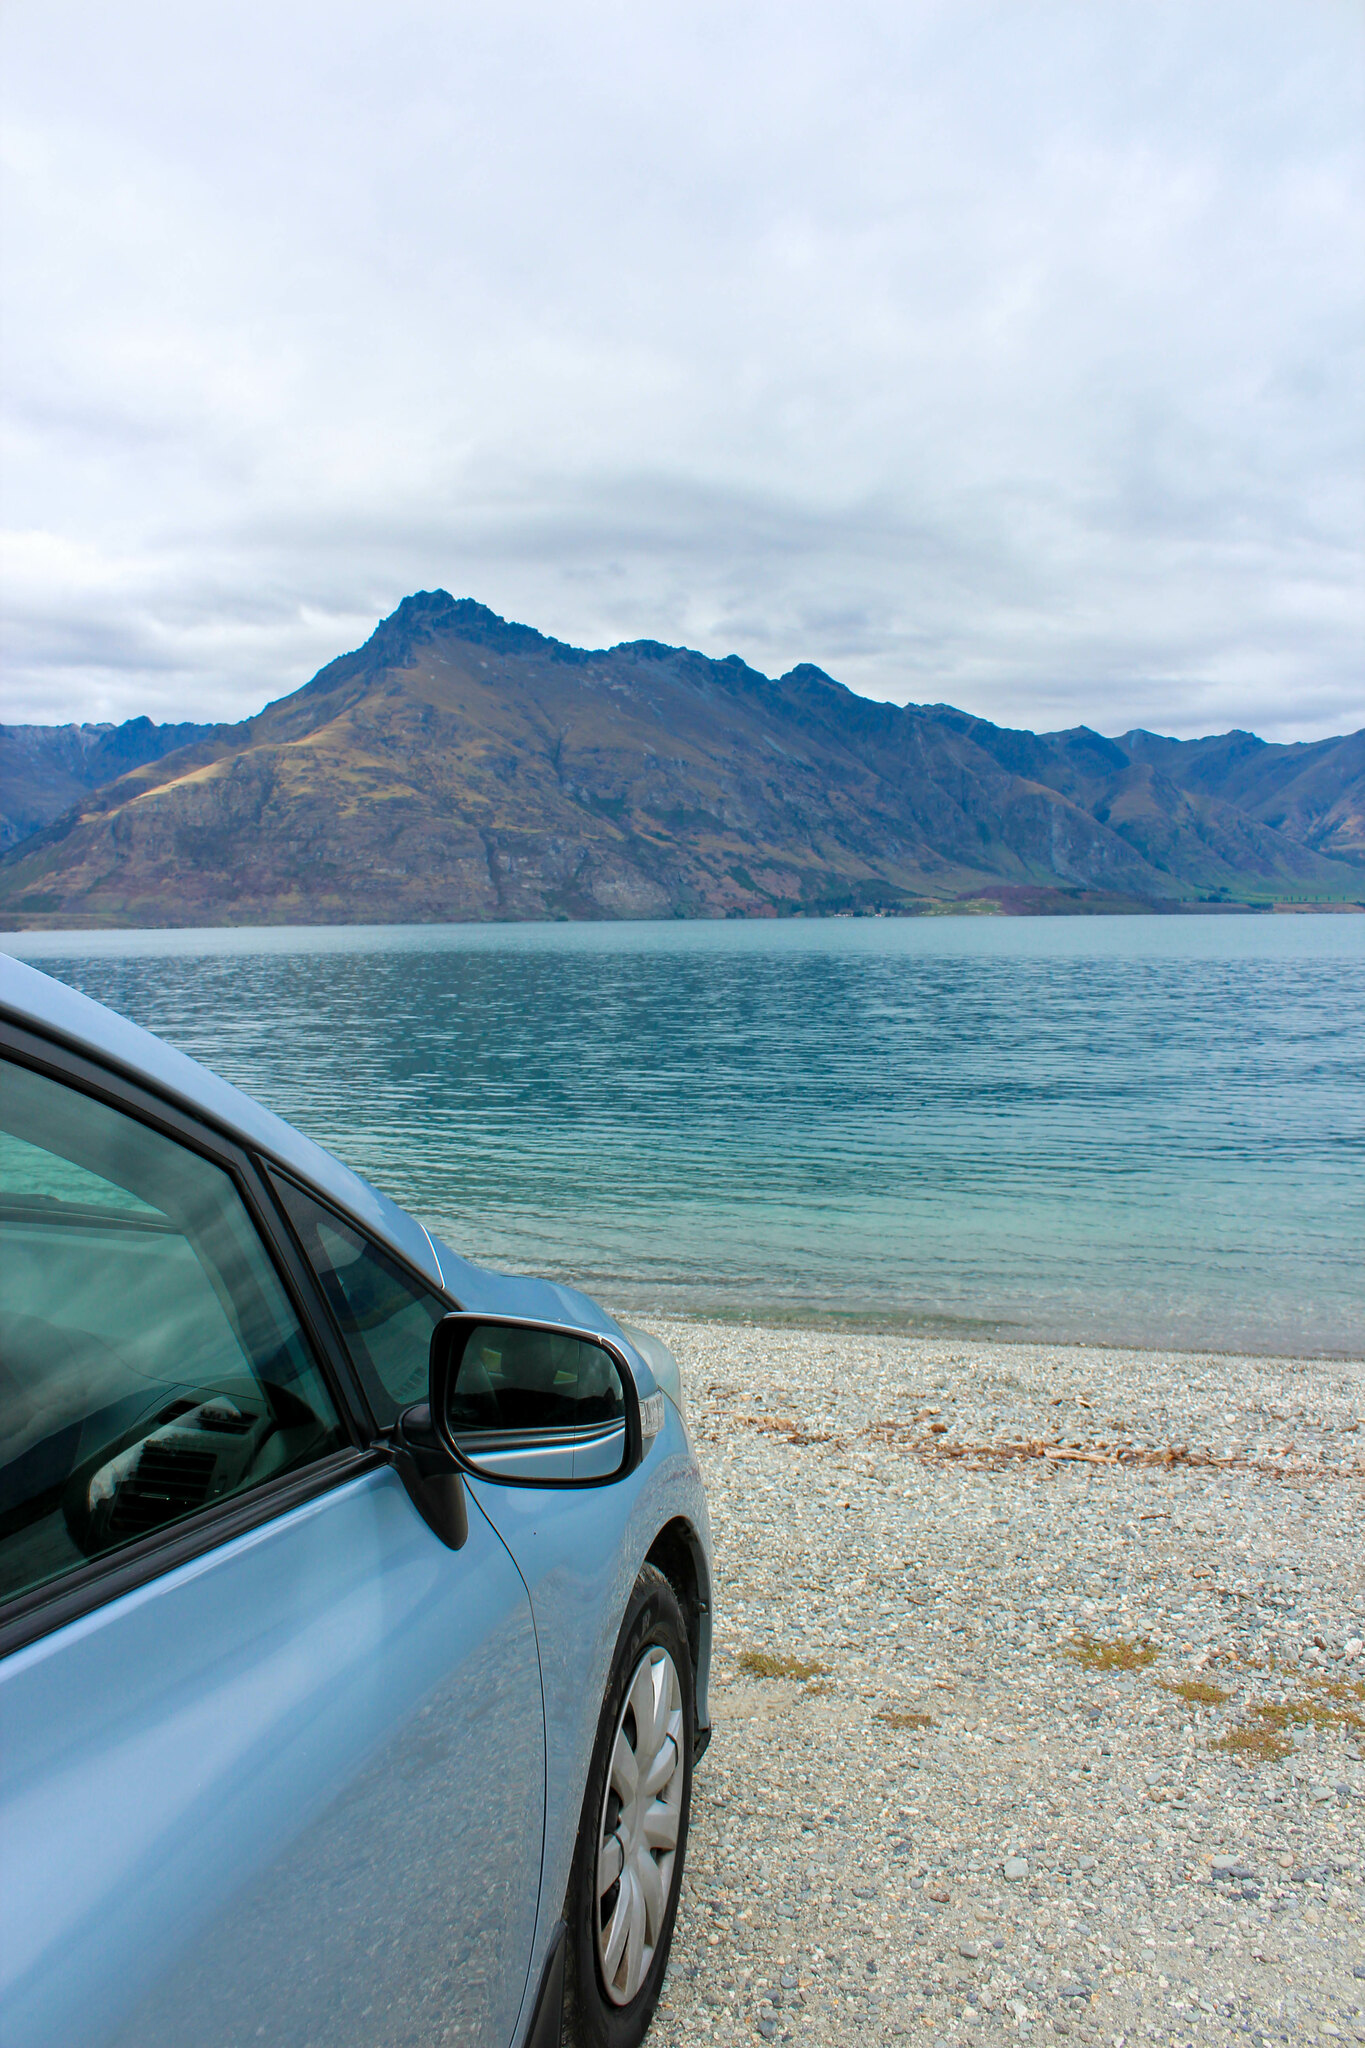 Stopover at Wilson Bay Reserve (along Glenorchy-Queenstown Rd)